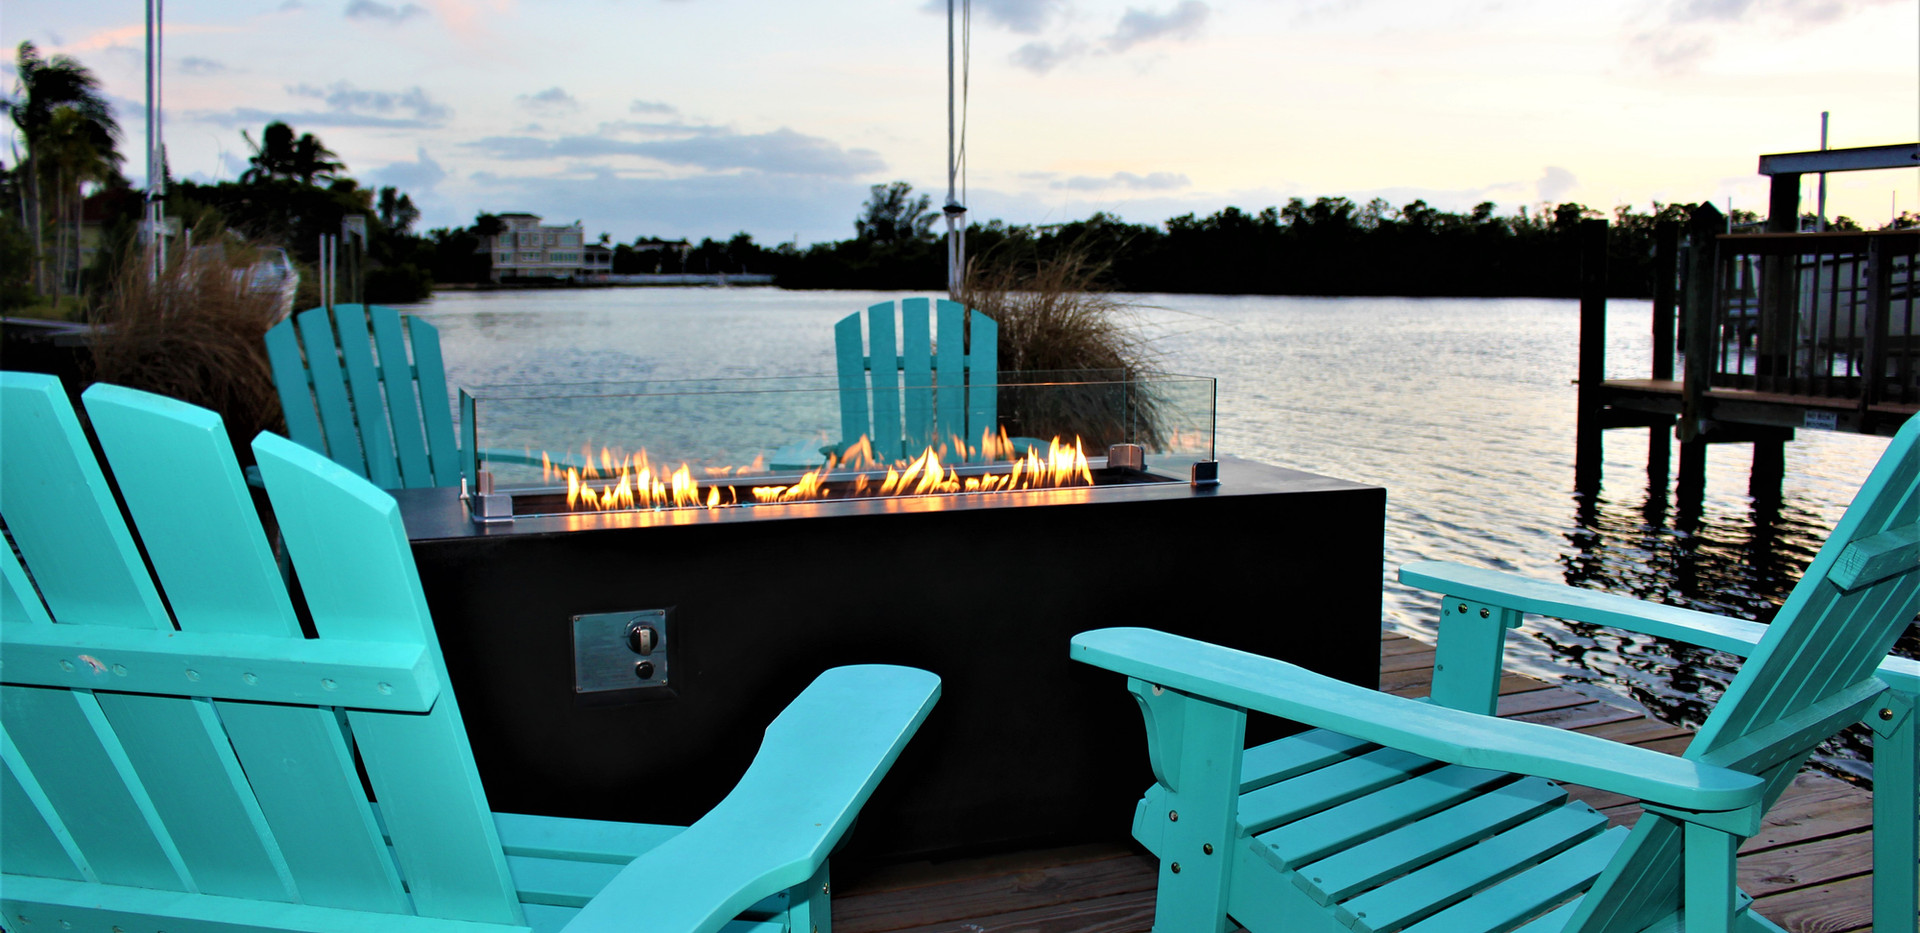 Fire Table on the dock